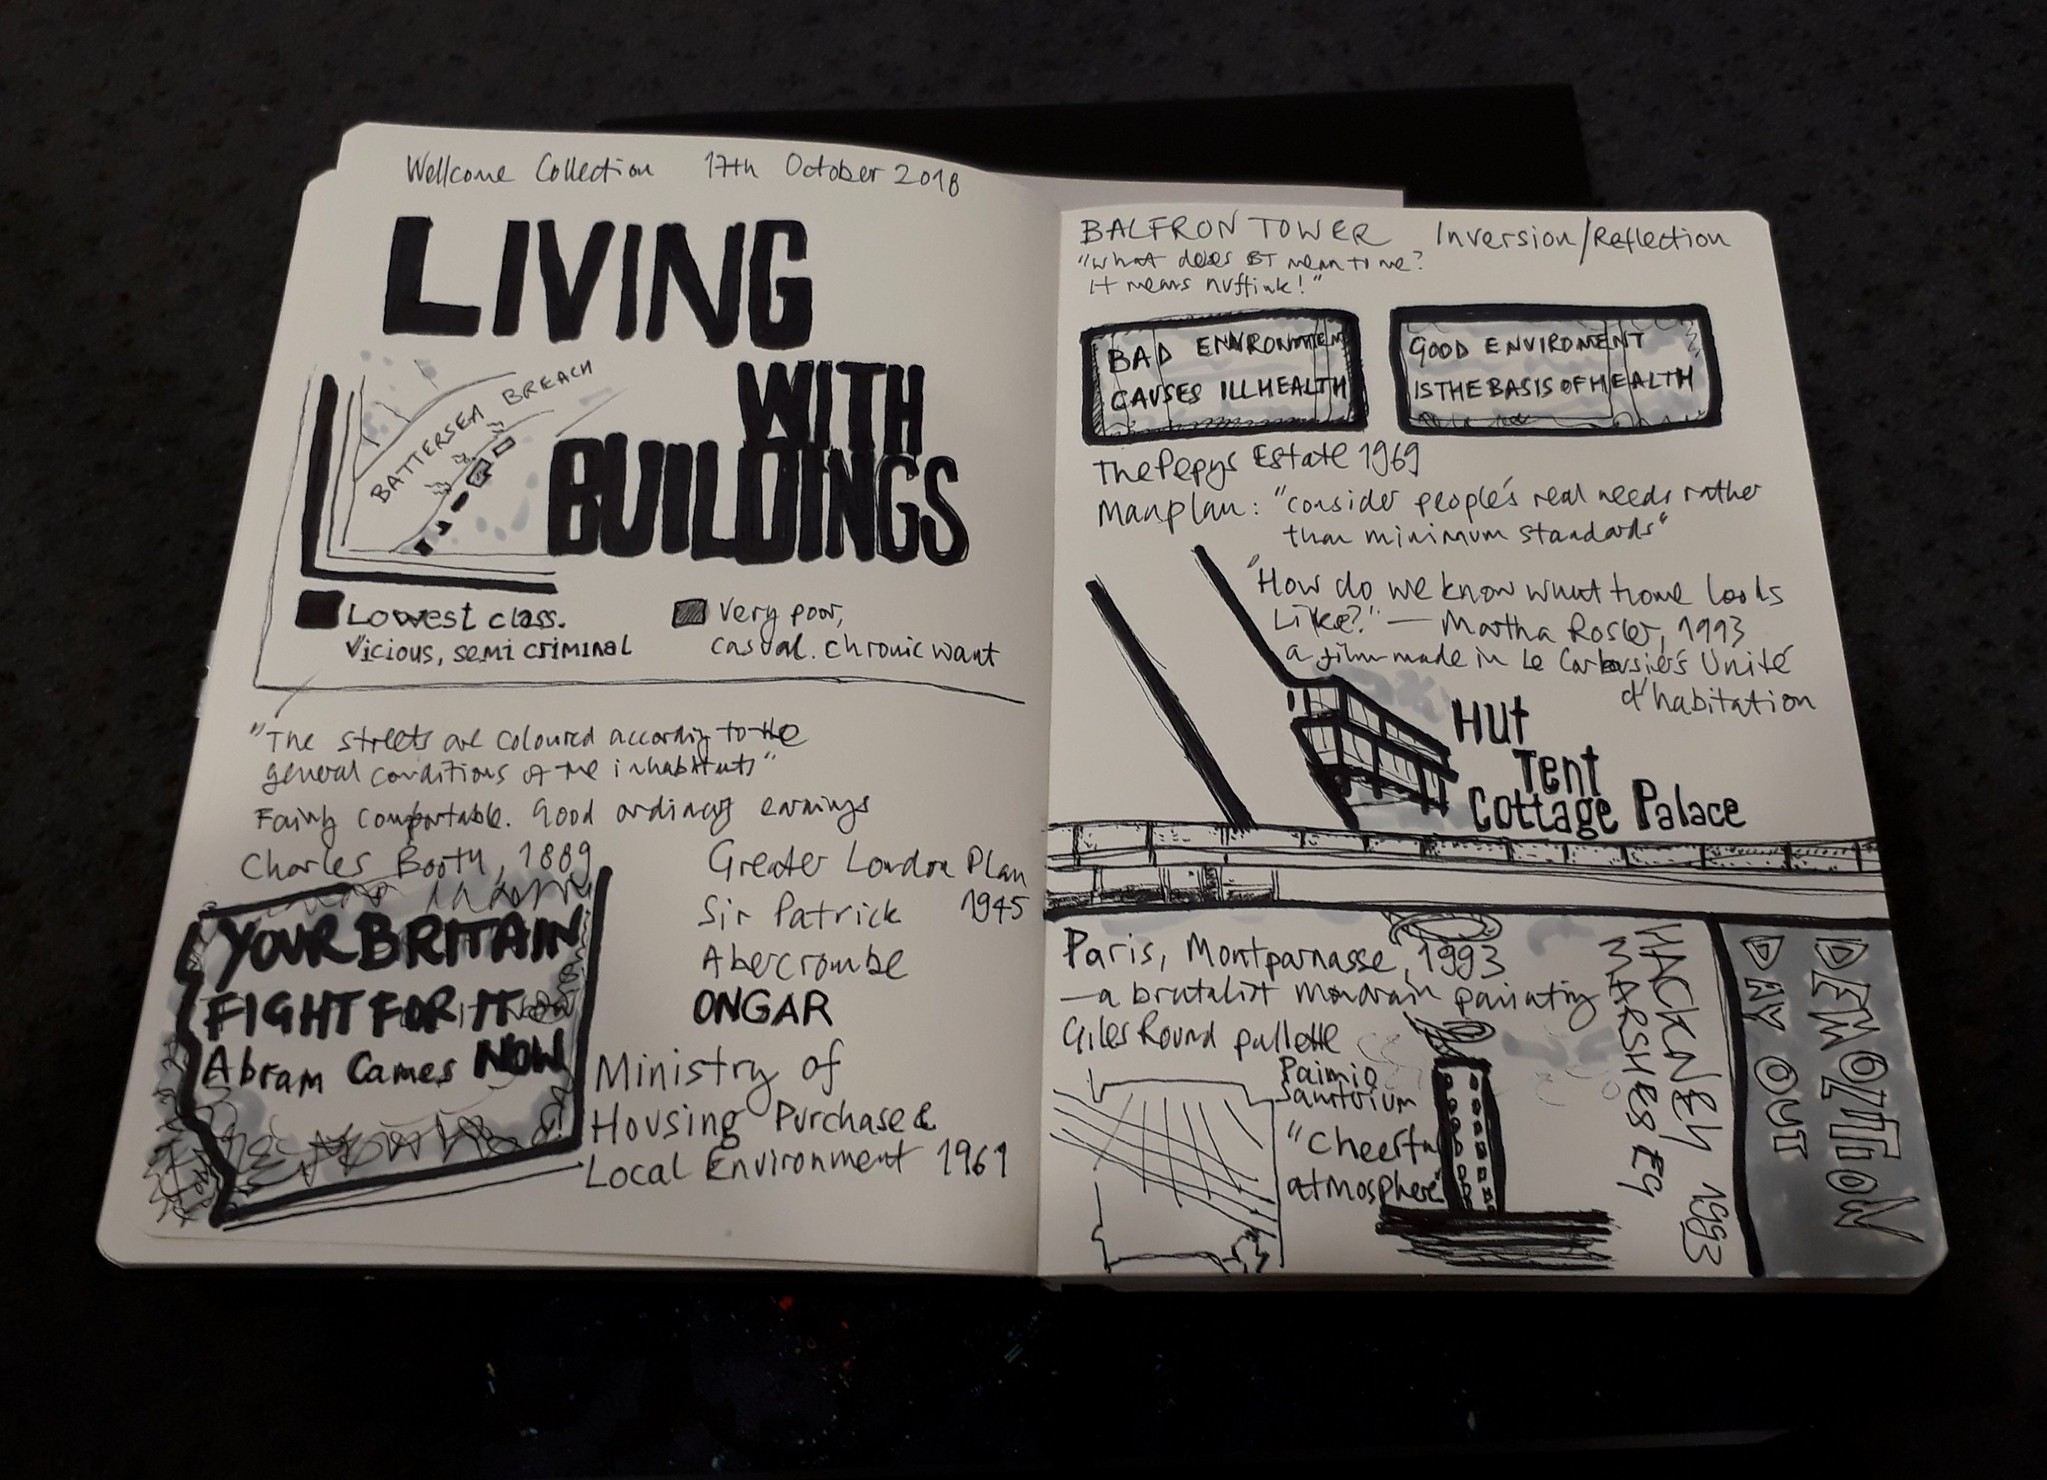 Living with buildings exhibition at the Wellcome Collection